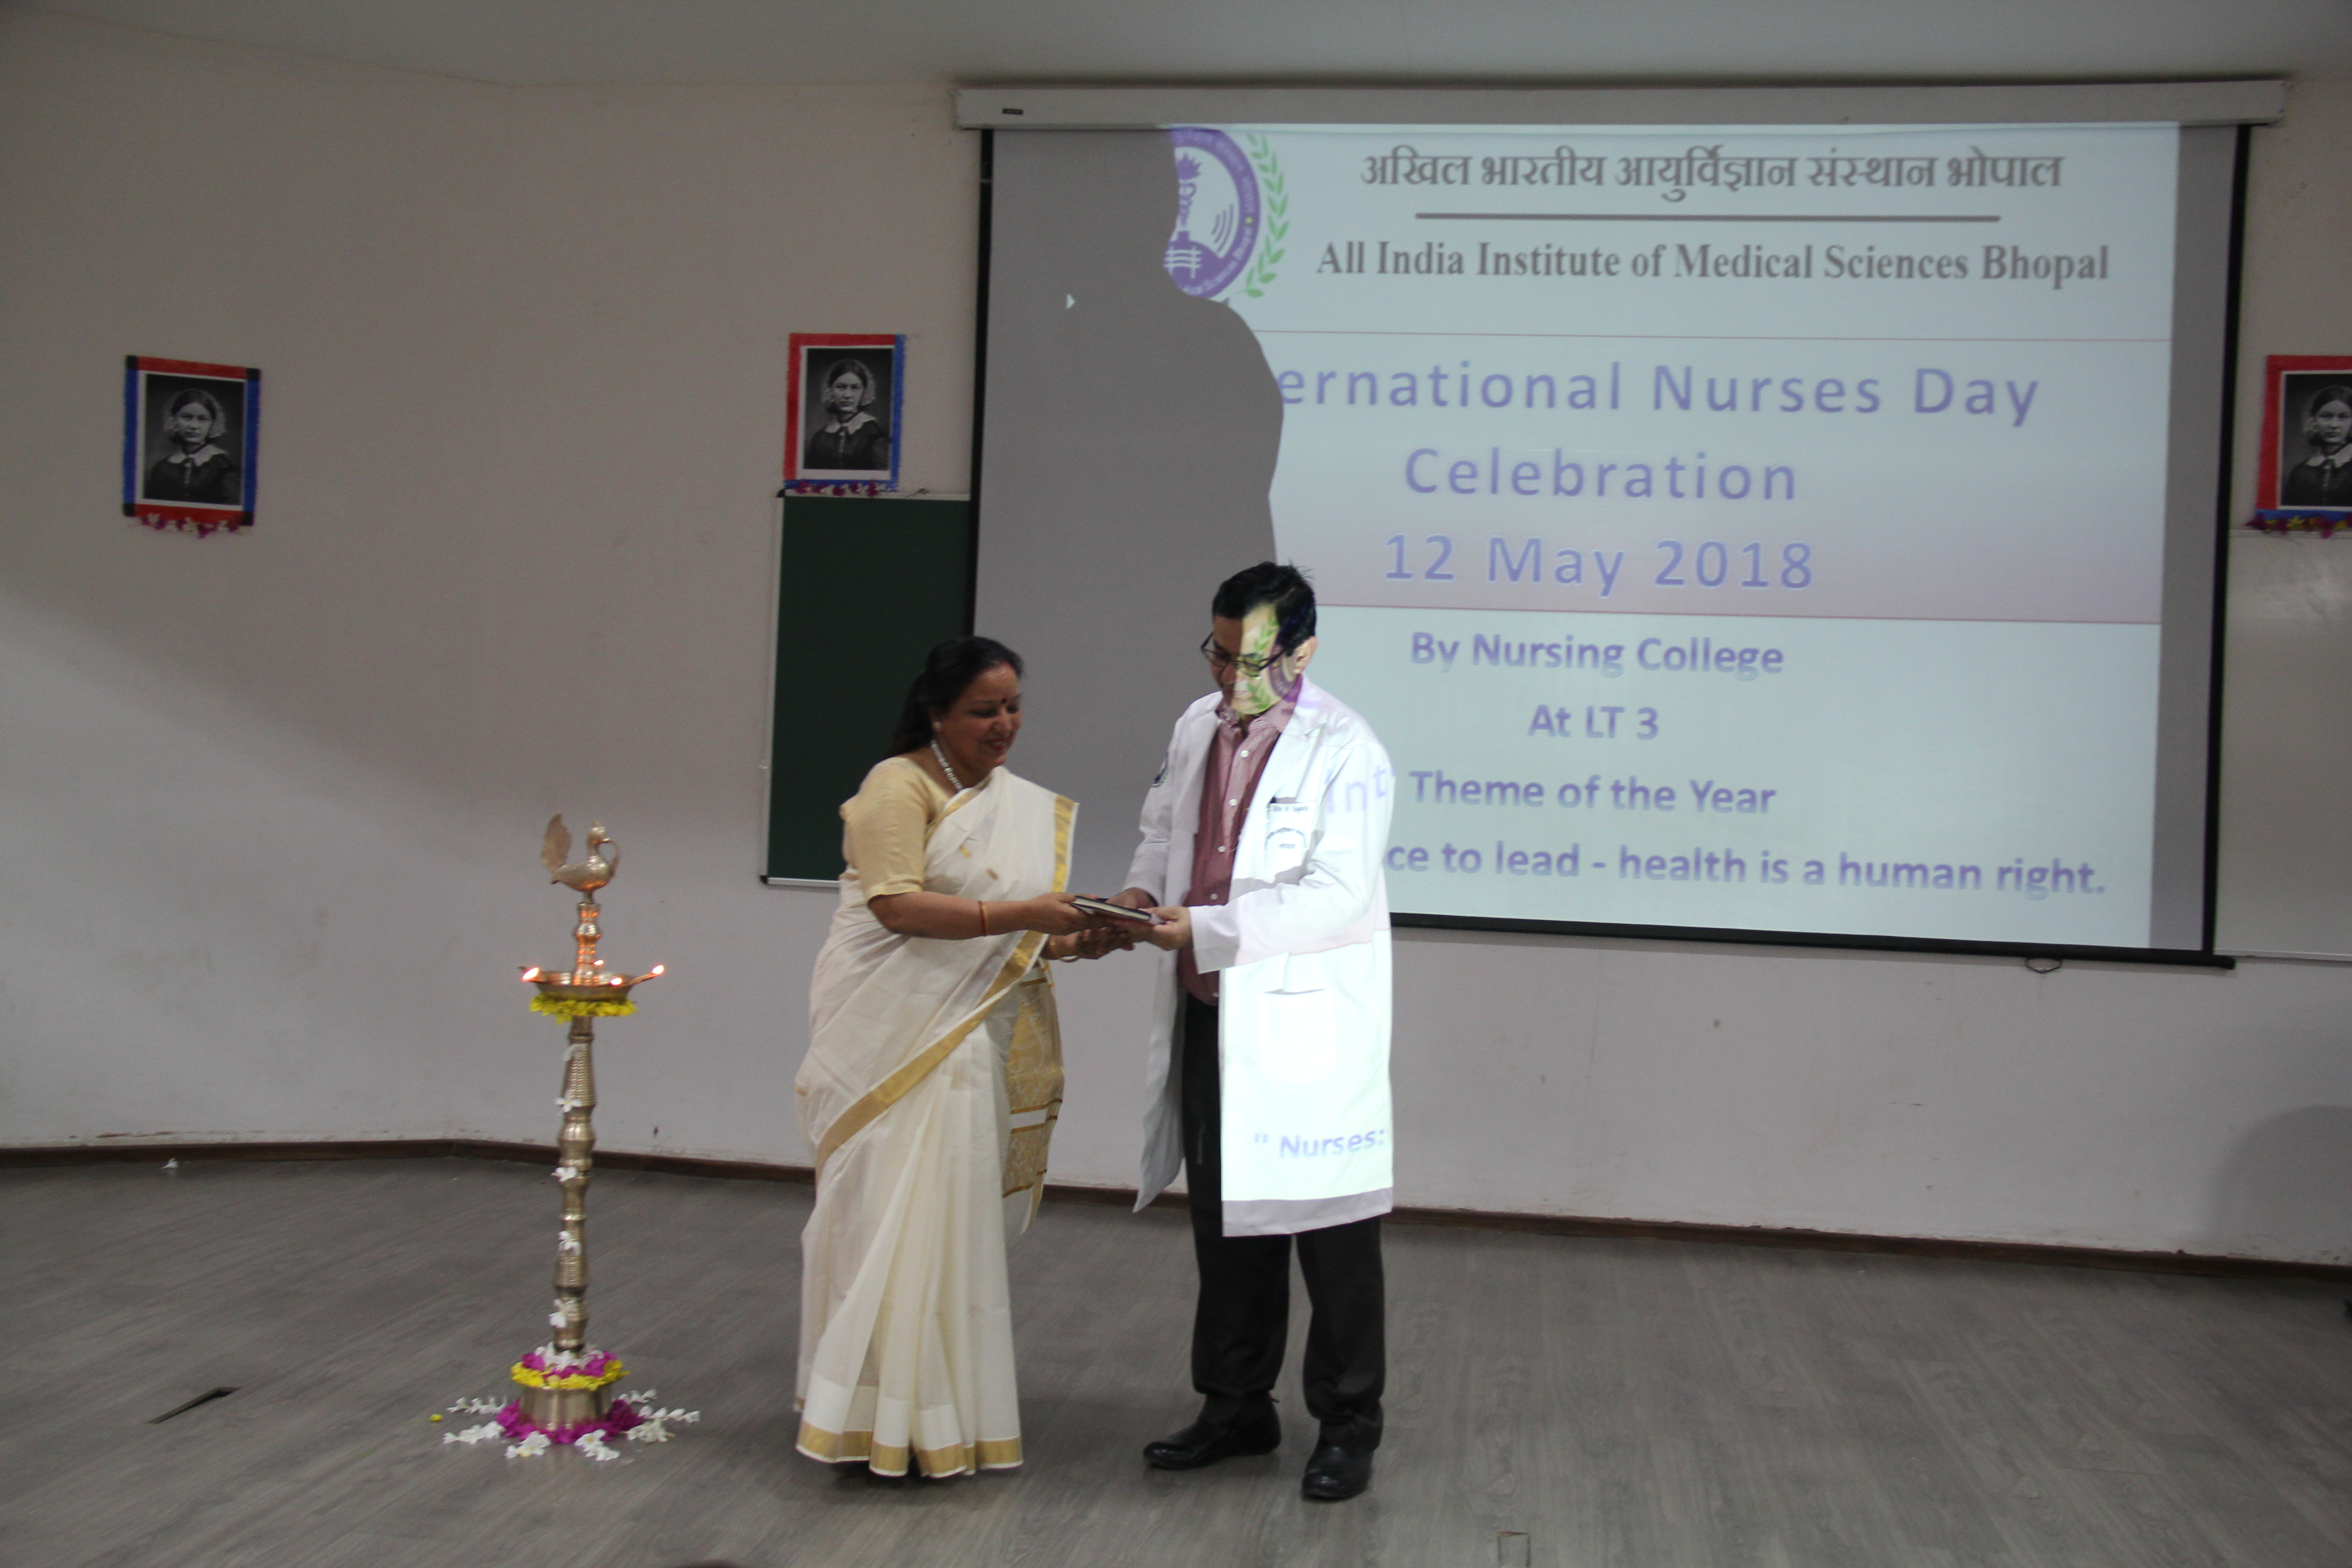 Nursing College, AIIMS Bhopal